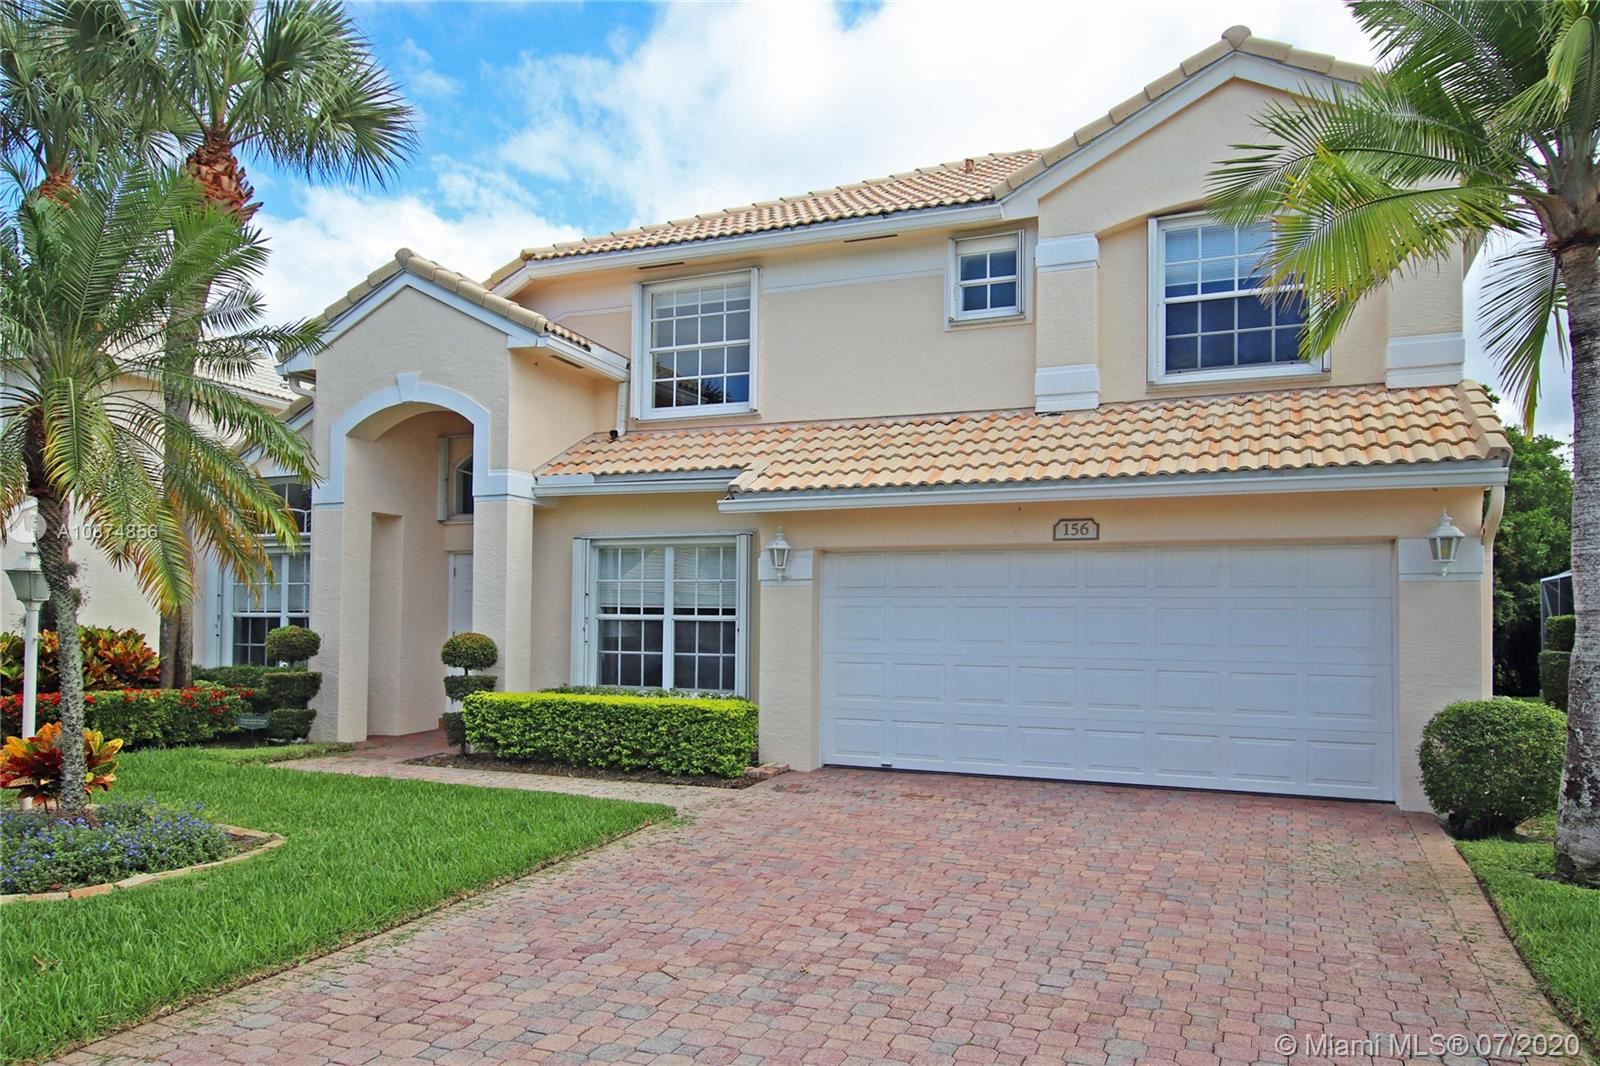 156 Jones Creek Dr, Jupiter, FL 33458 - #: A10874856